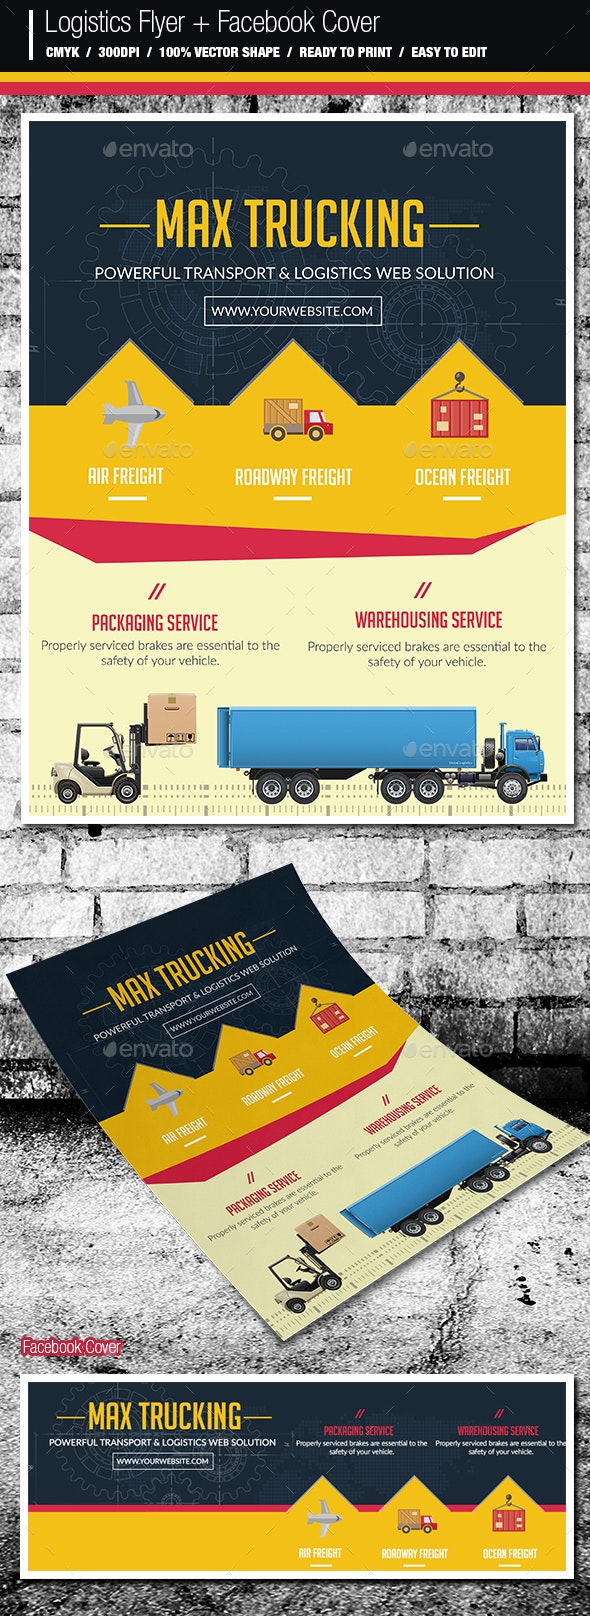 Logistics Flyer And Facebook Cover - Corporate Flyers